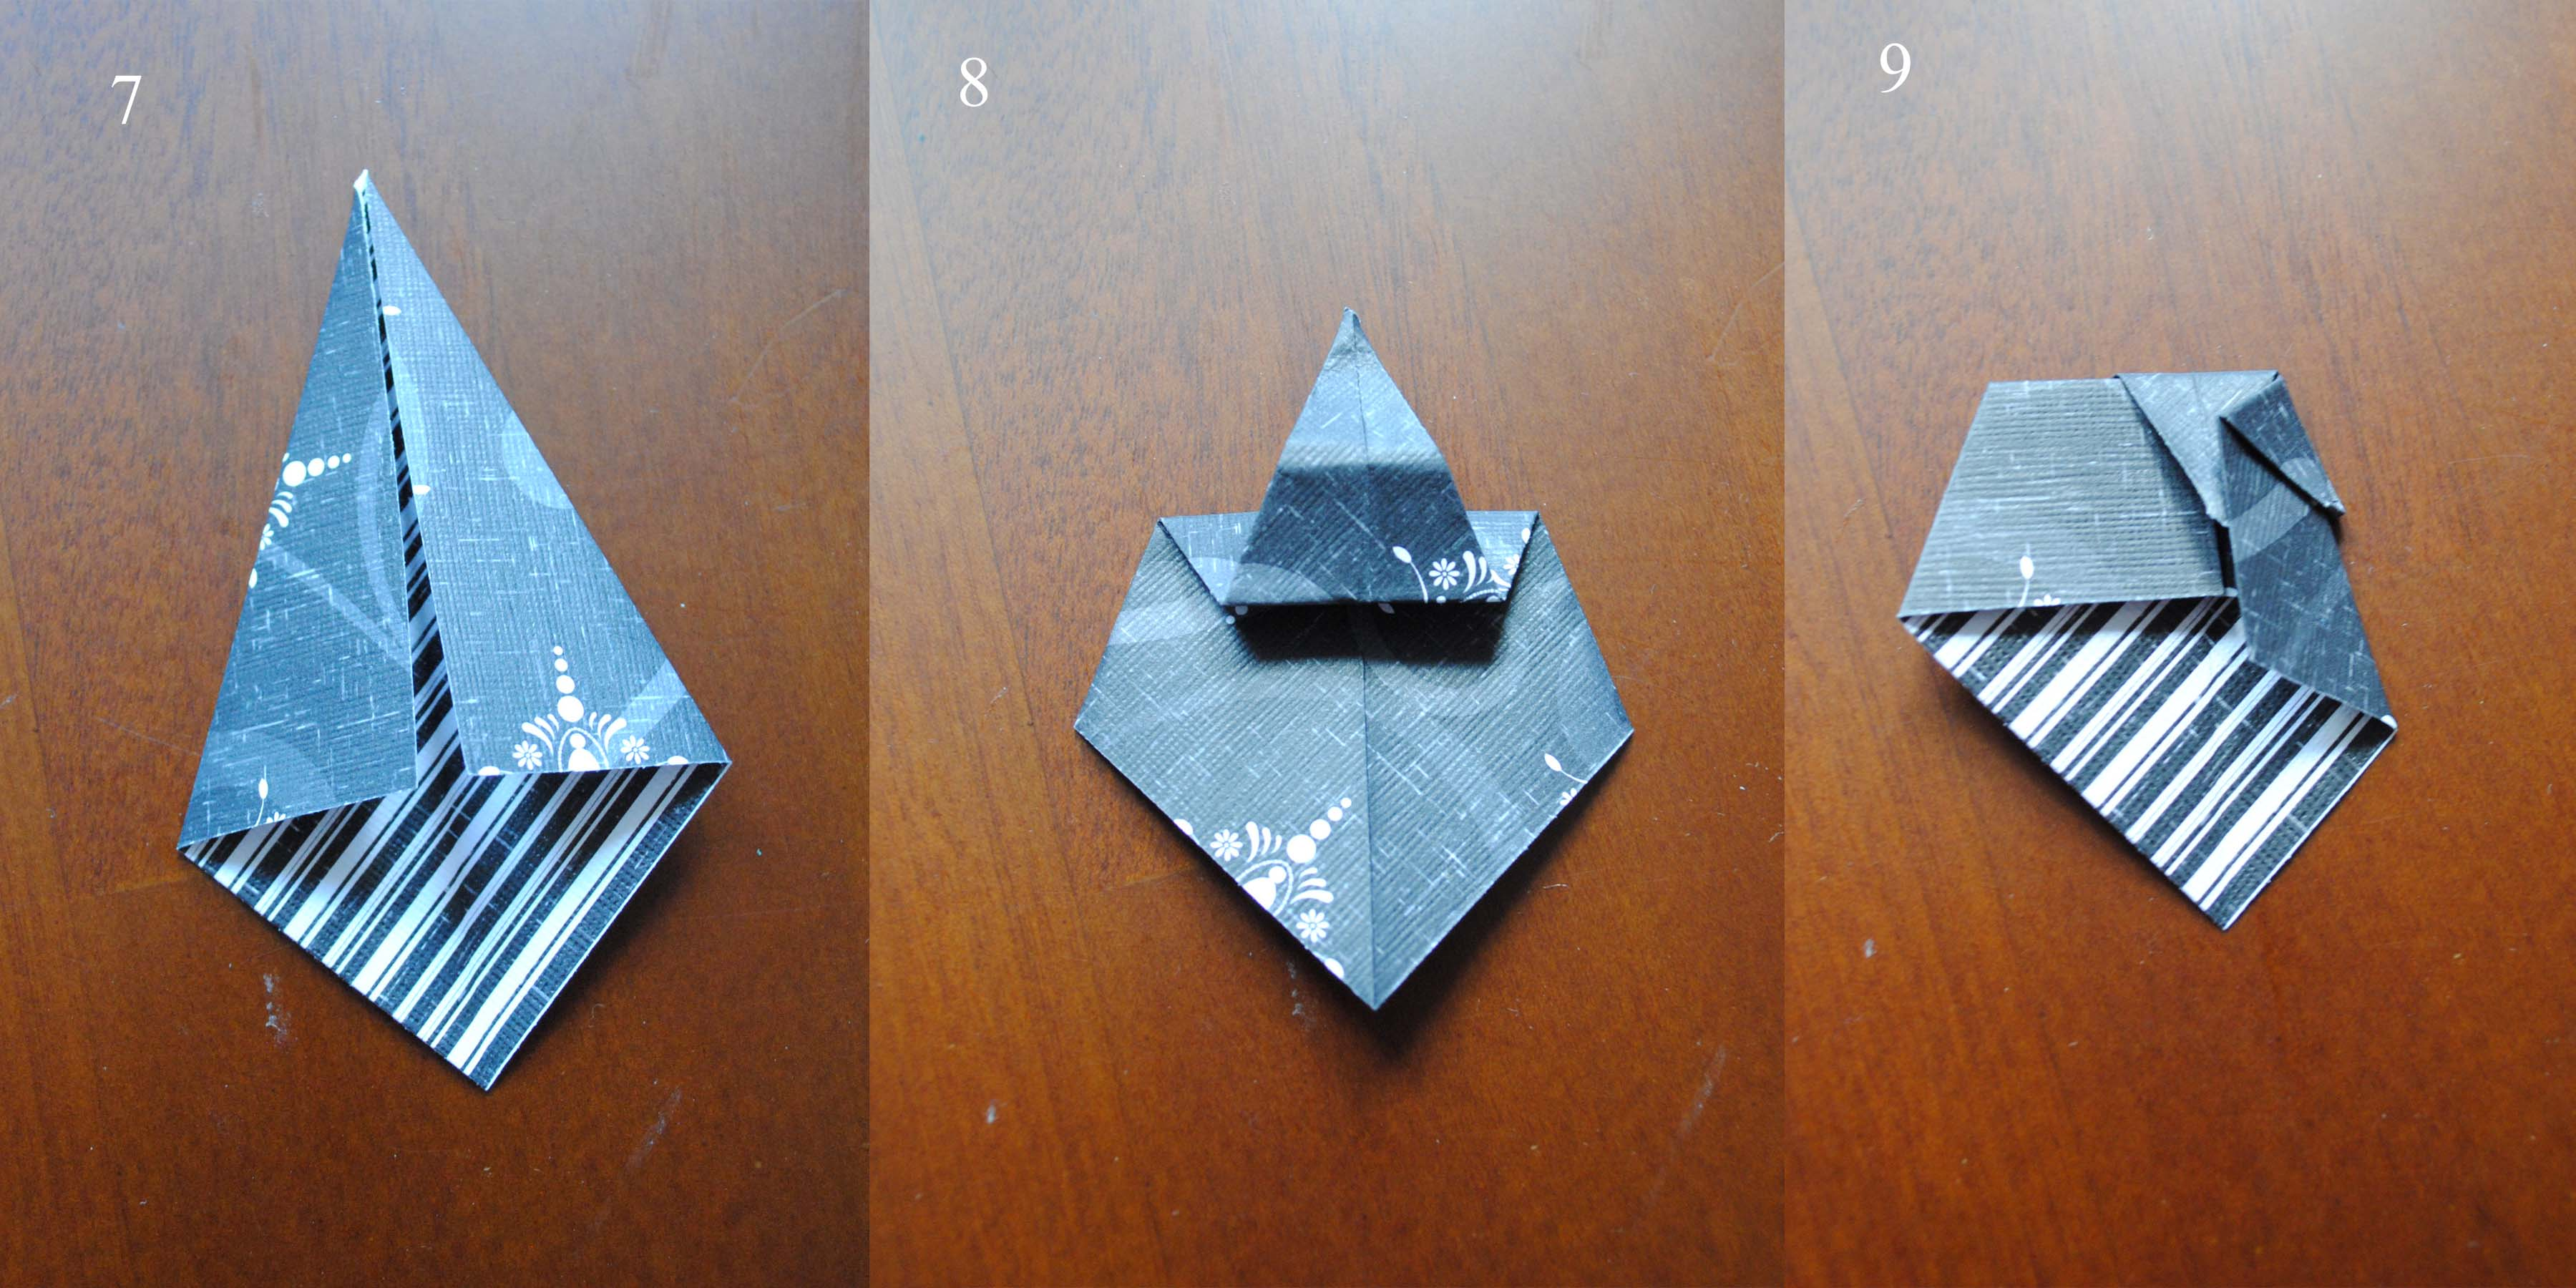 How to Make Paper Shirt and Tie | Easy Paper Crafts Origami ... | 1800x3600